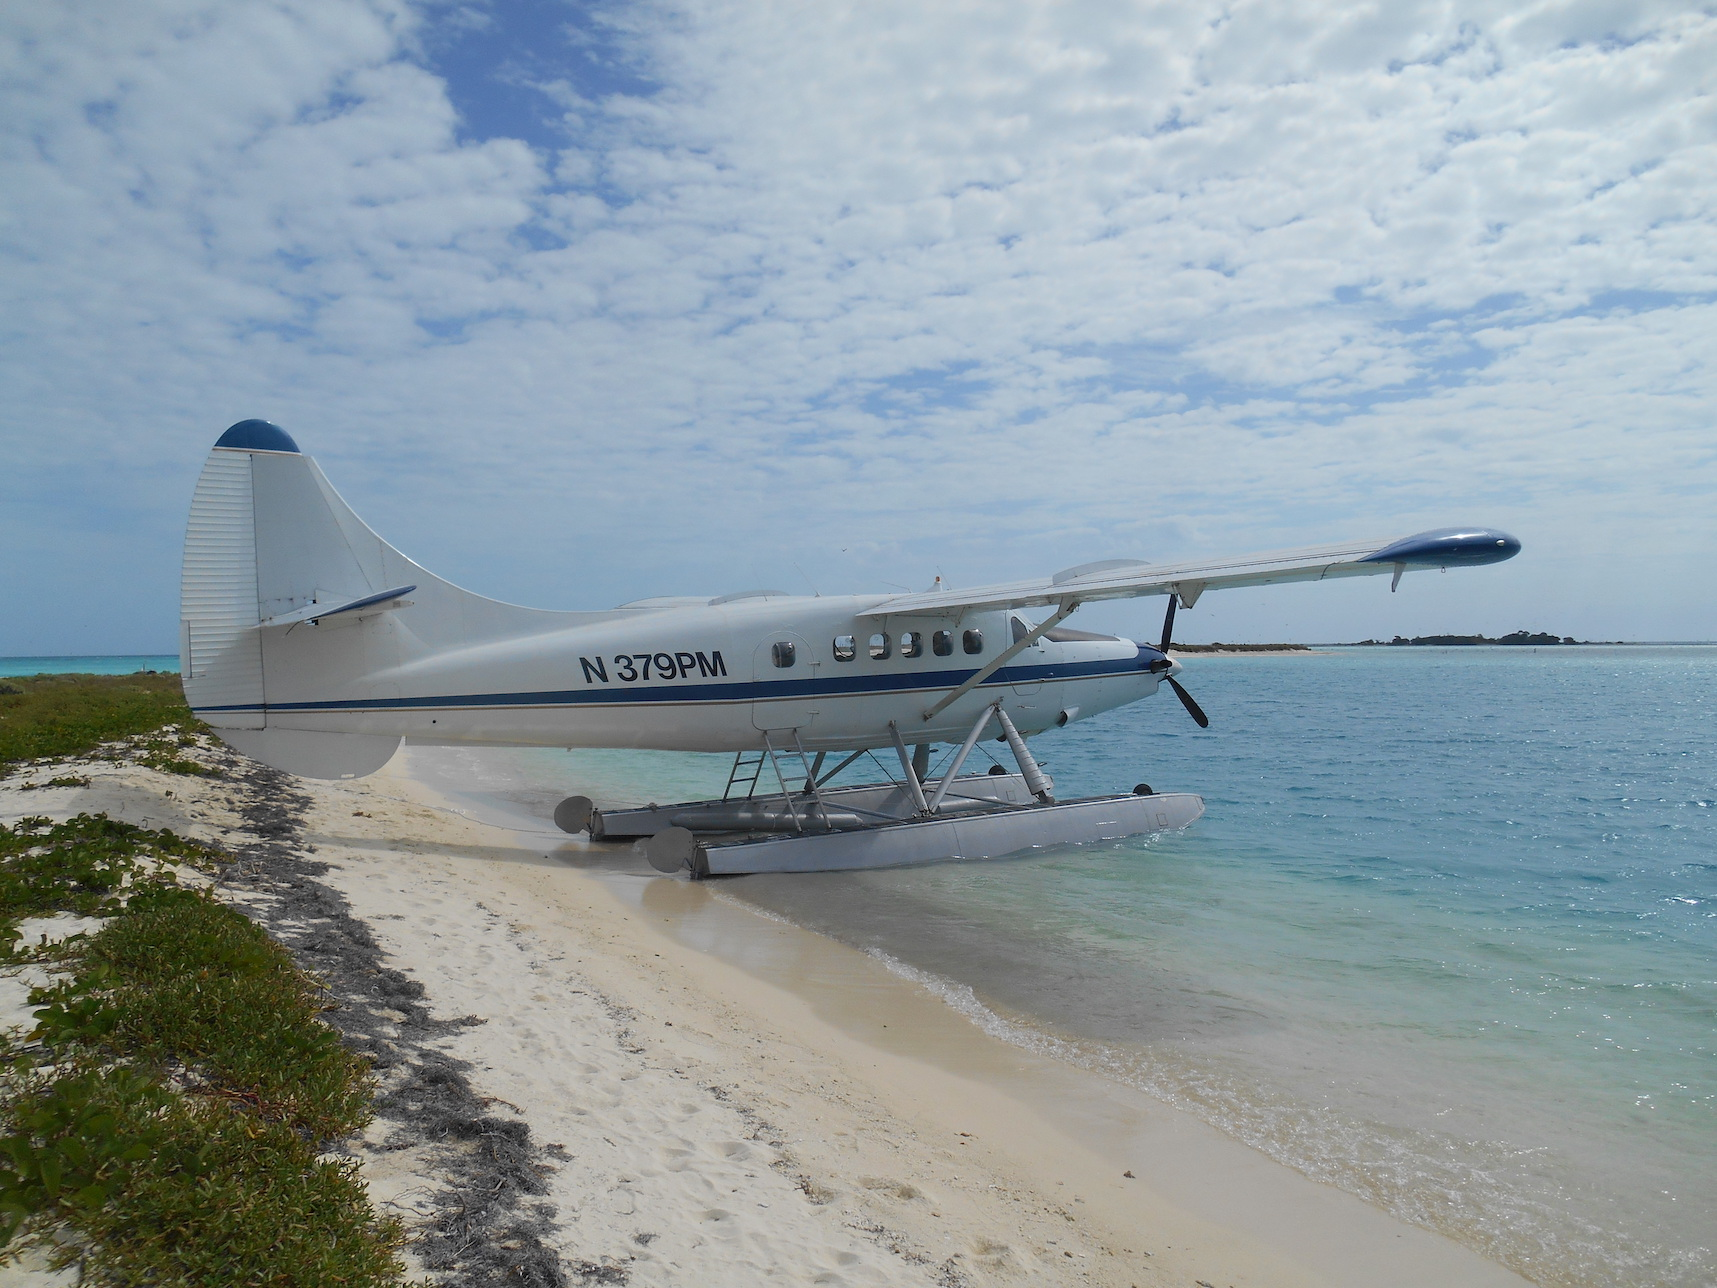 Seaplane at Dry Tortugas